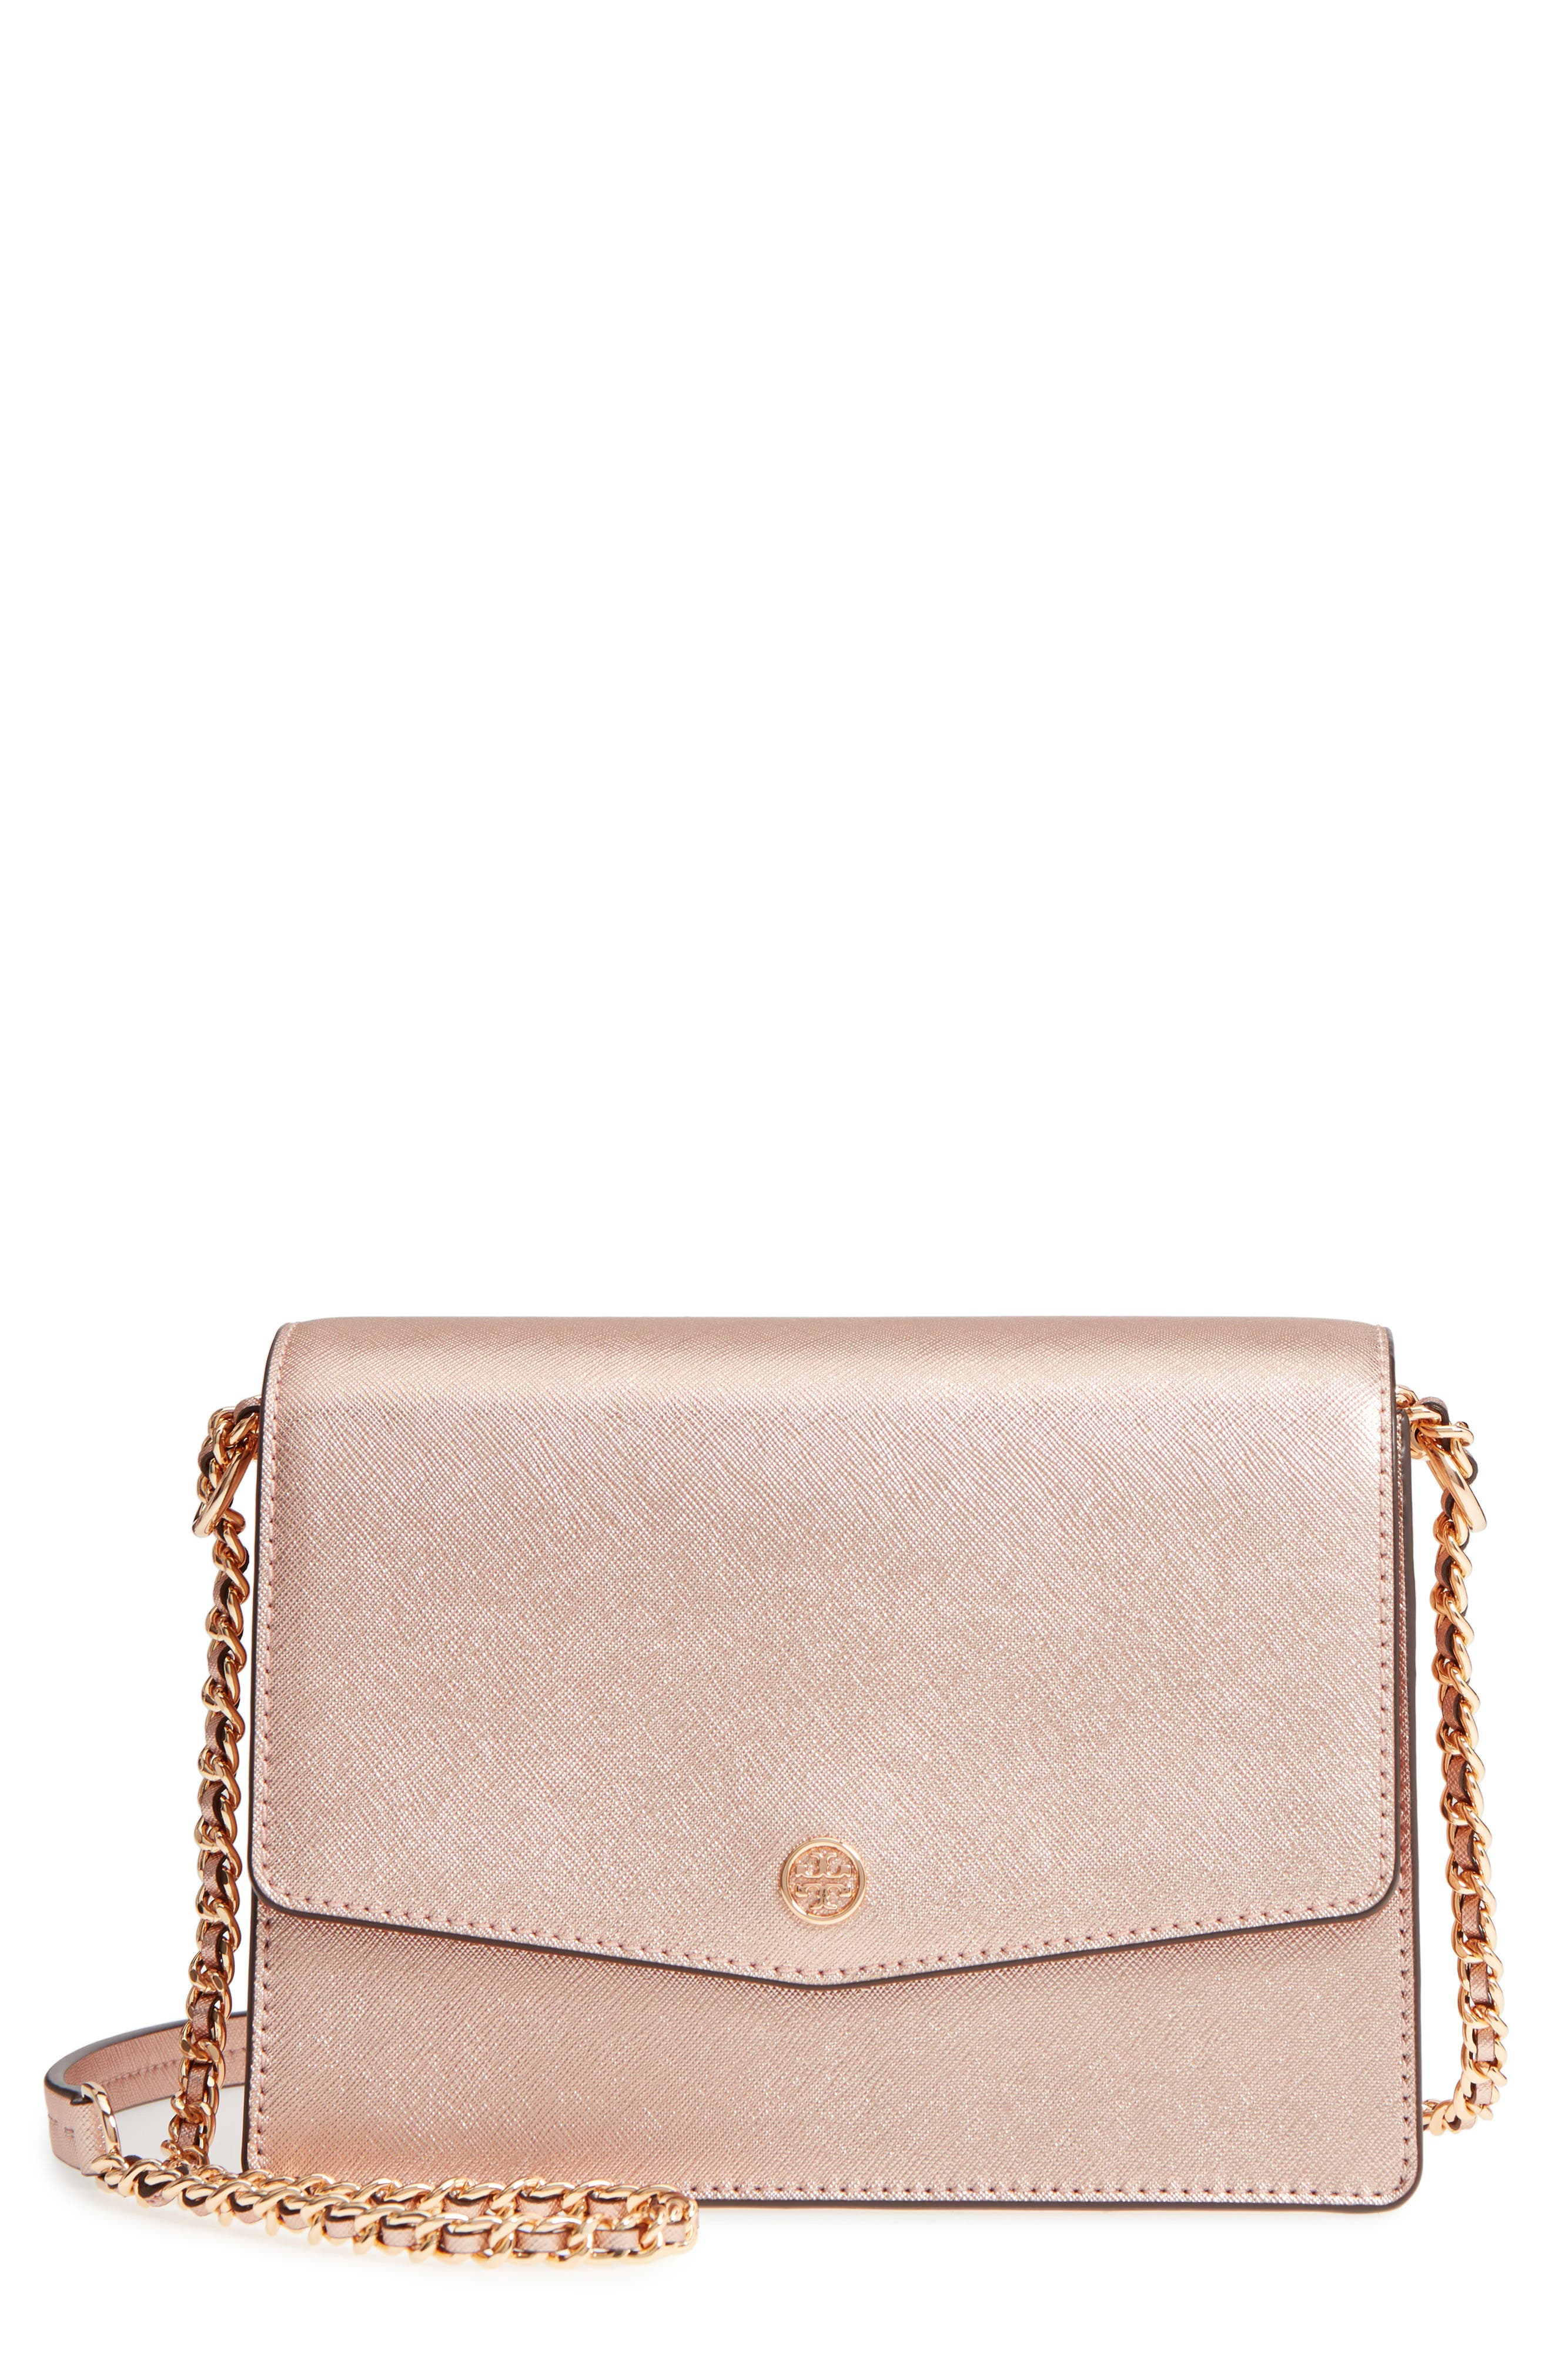 Robinson Convertible Metallic Leather Shoulder Bag,                             Main thumbnail 1, color,                             Light Rose Gold